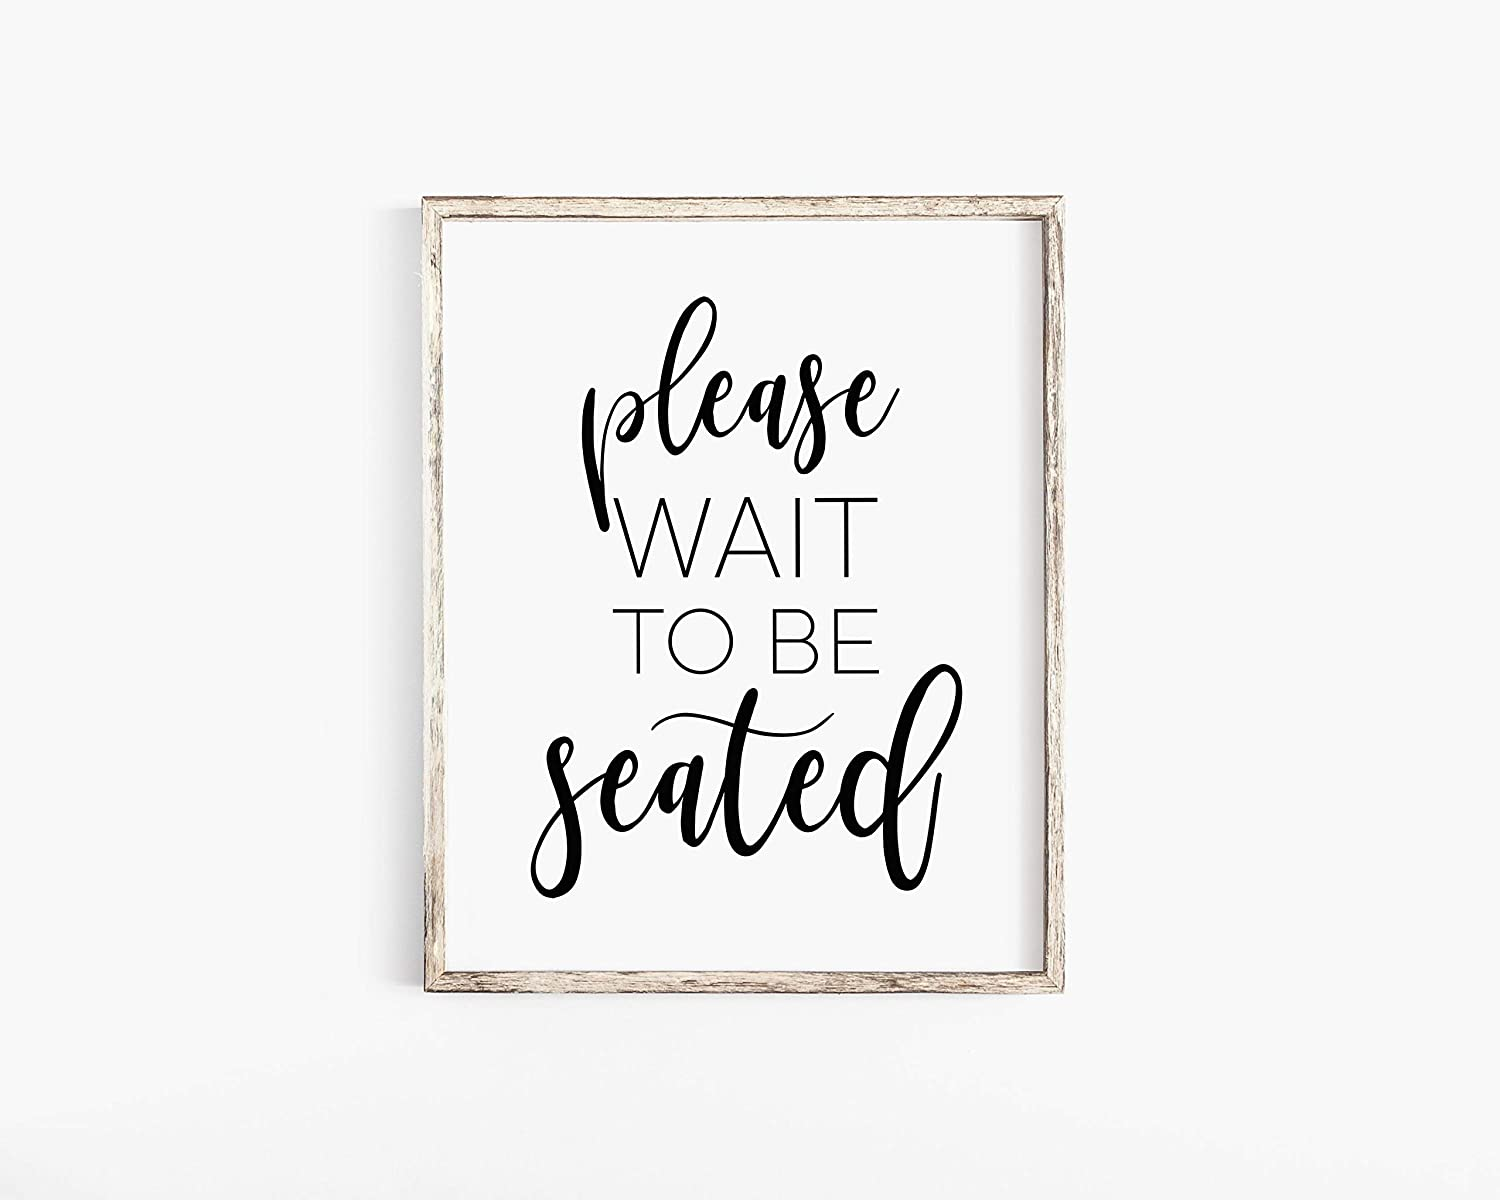 Malertaart Please Wait To Be Seated Sign Bathroom Wall Decor Printable Wall Art Funny Bathroom Art Bathroom Sign Bathroom Print Washroom Toilet Framed Wall Art Albums Frames Journals Gifts Stationery